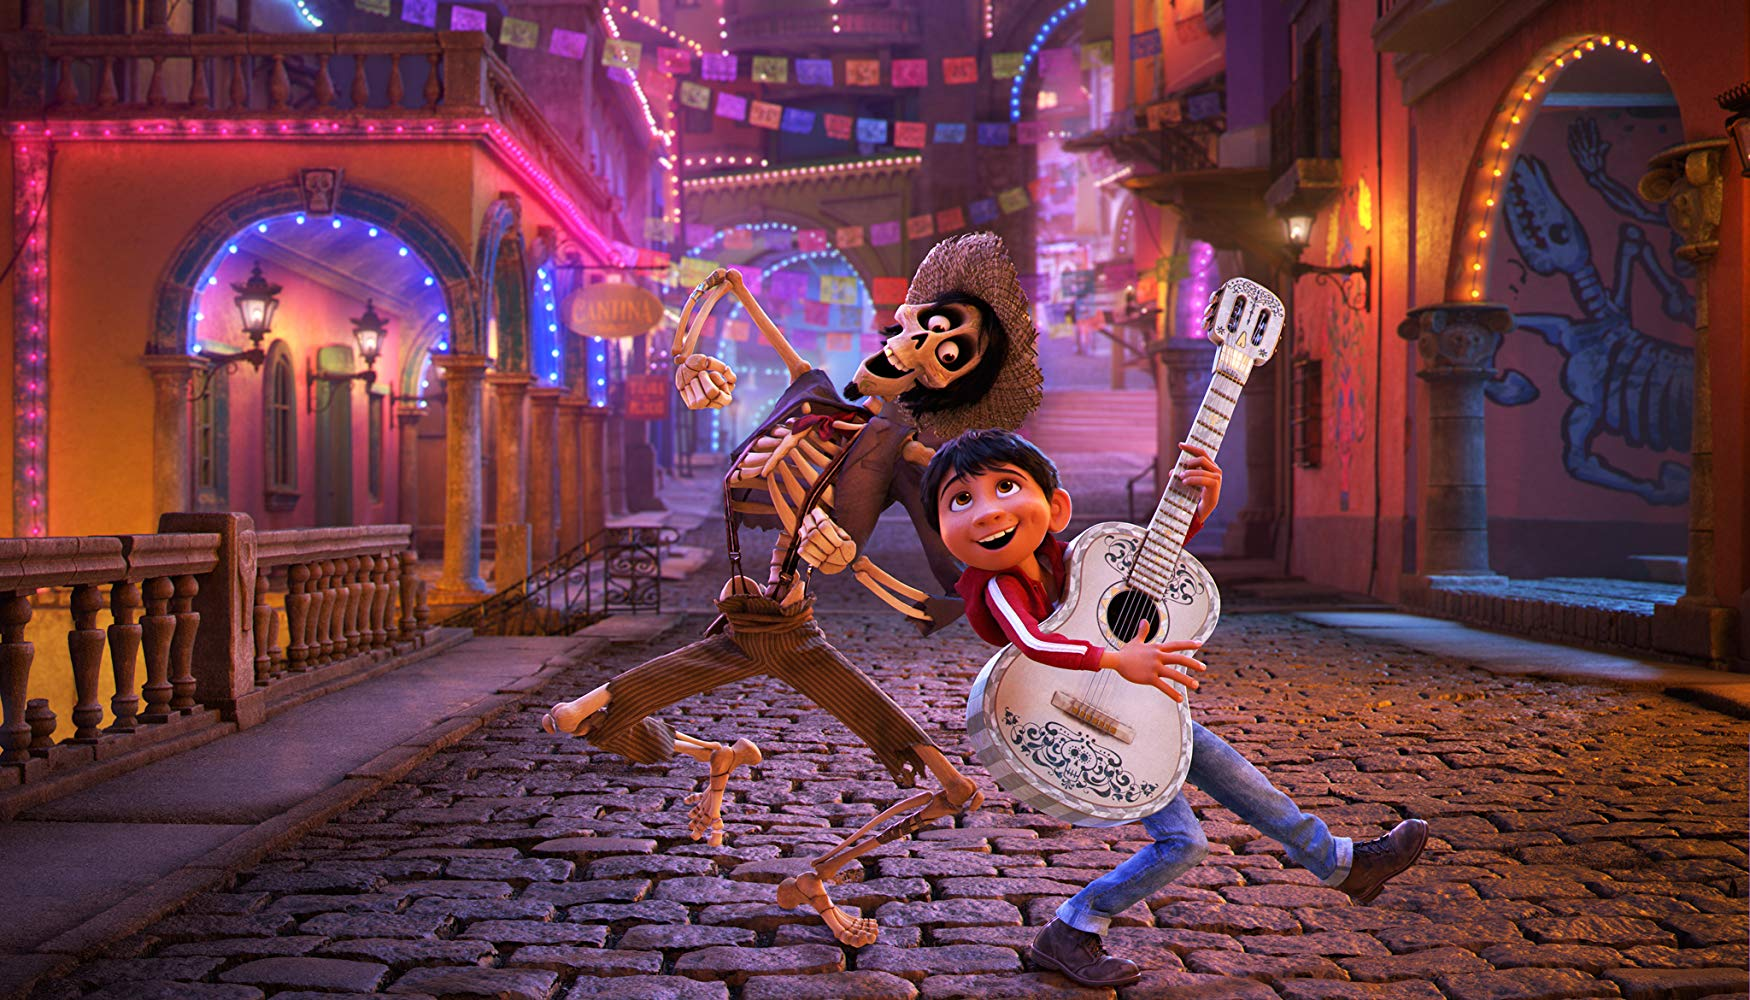 Hector (voiced by Gael Garcia Bernal) and Miguel (voiced by Anthony Gonzalez) sing through the streets in Coco (2017)